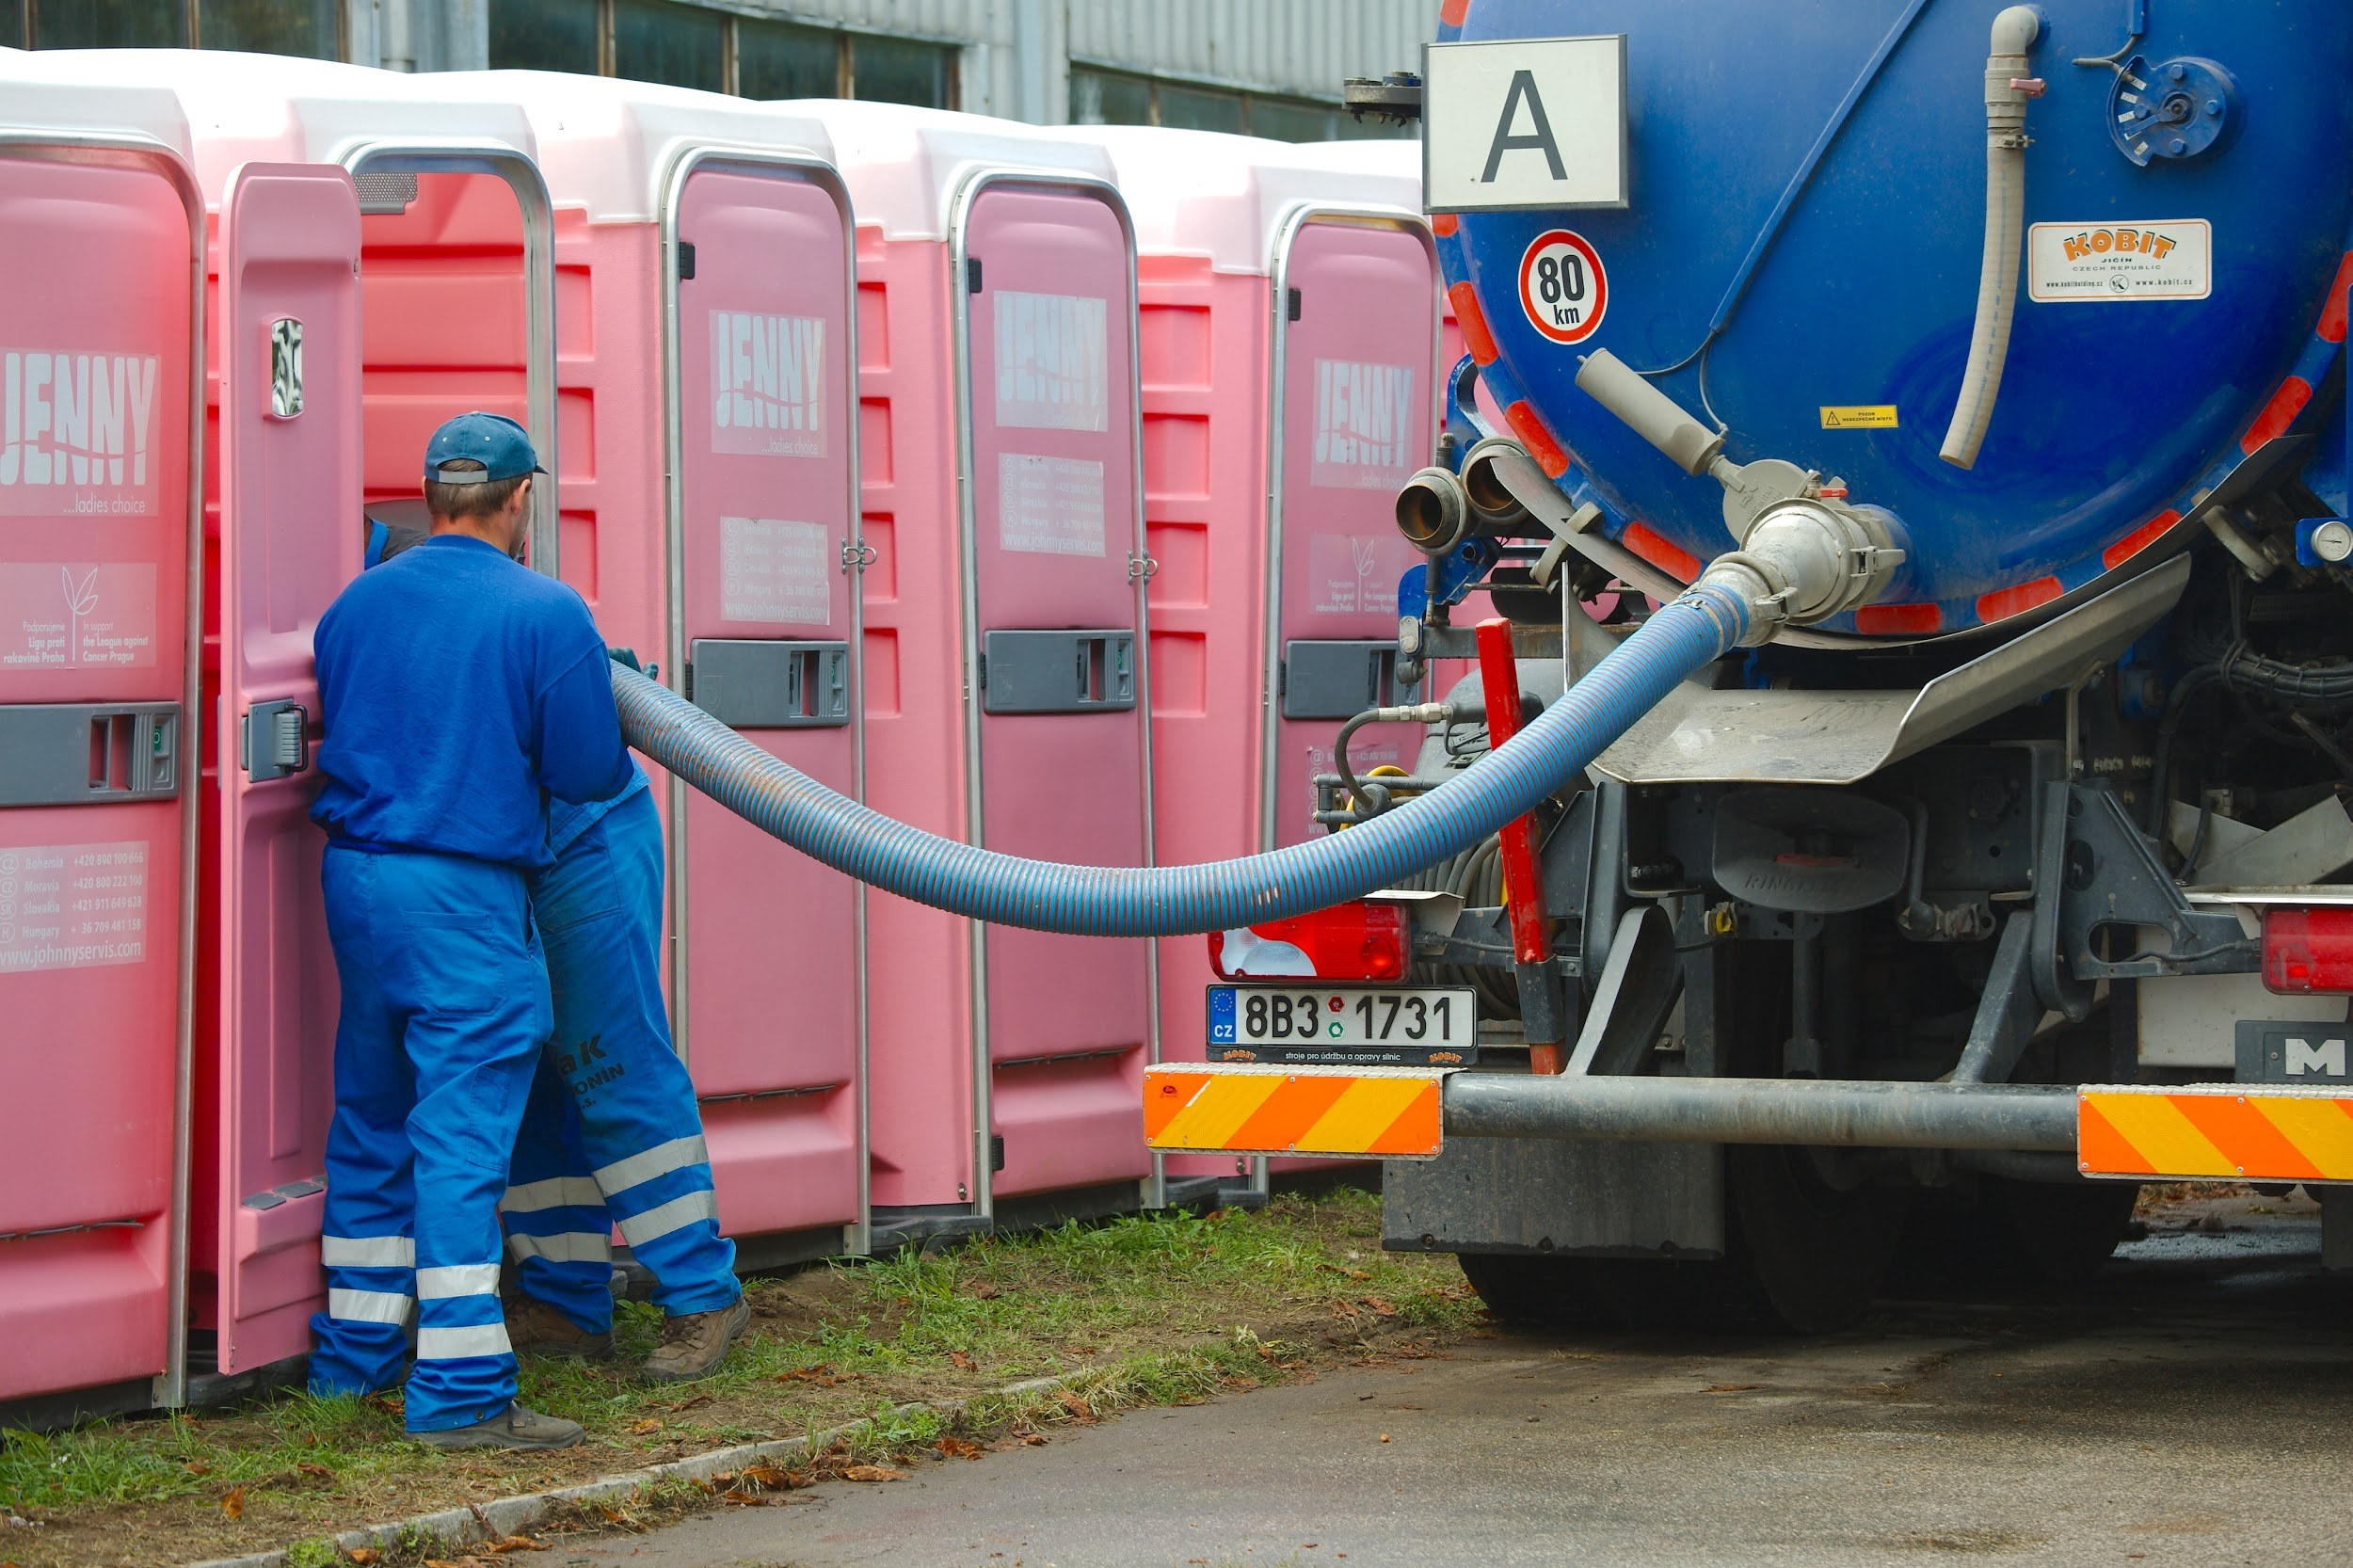 How To Empty A Portable Toilet?